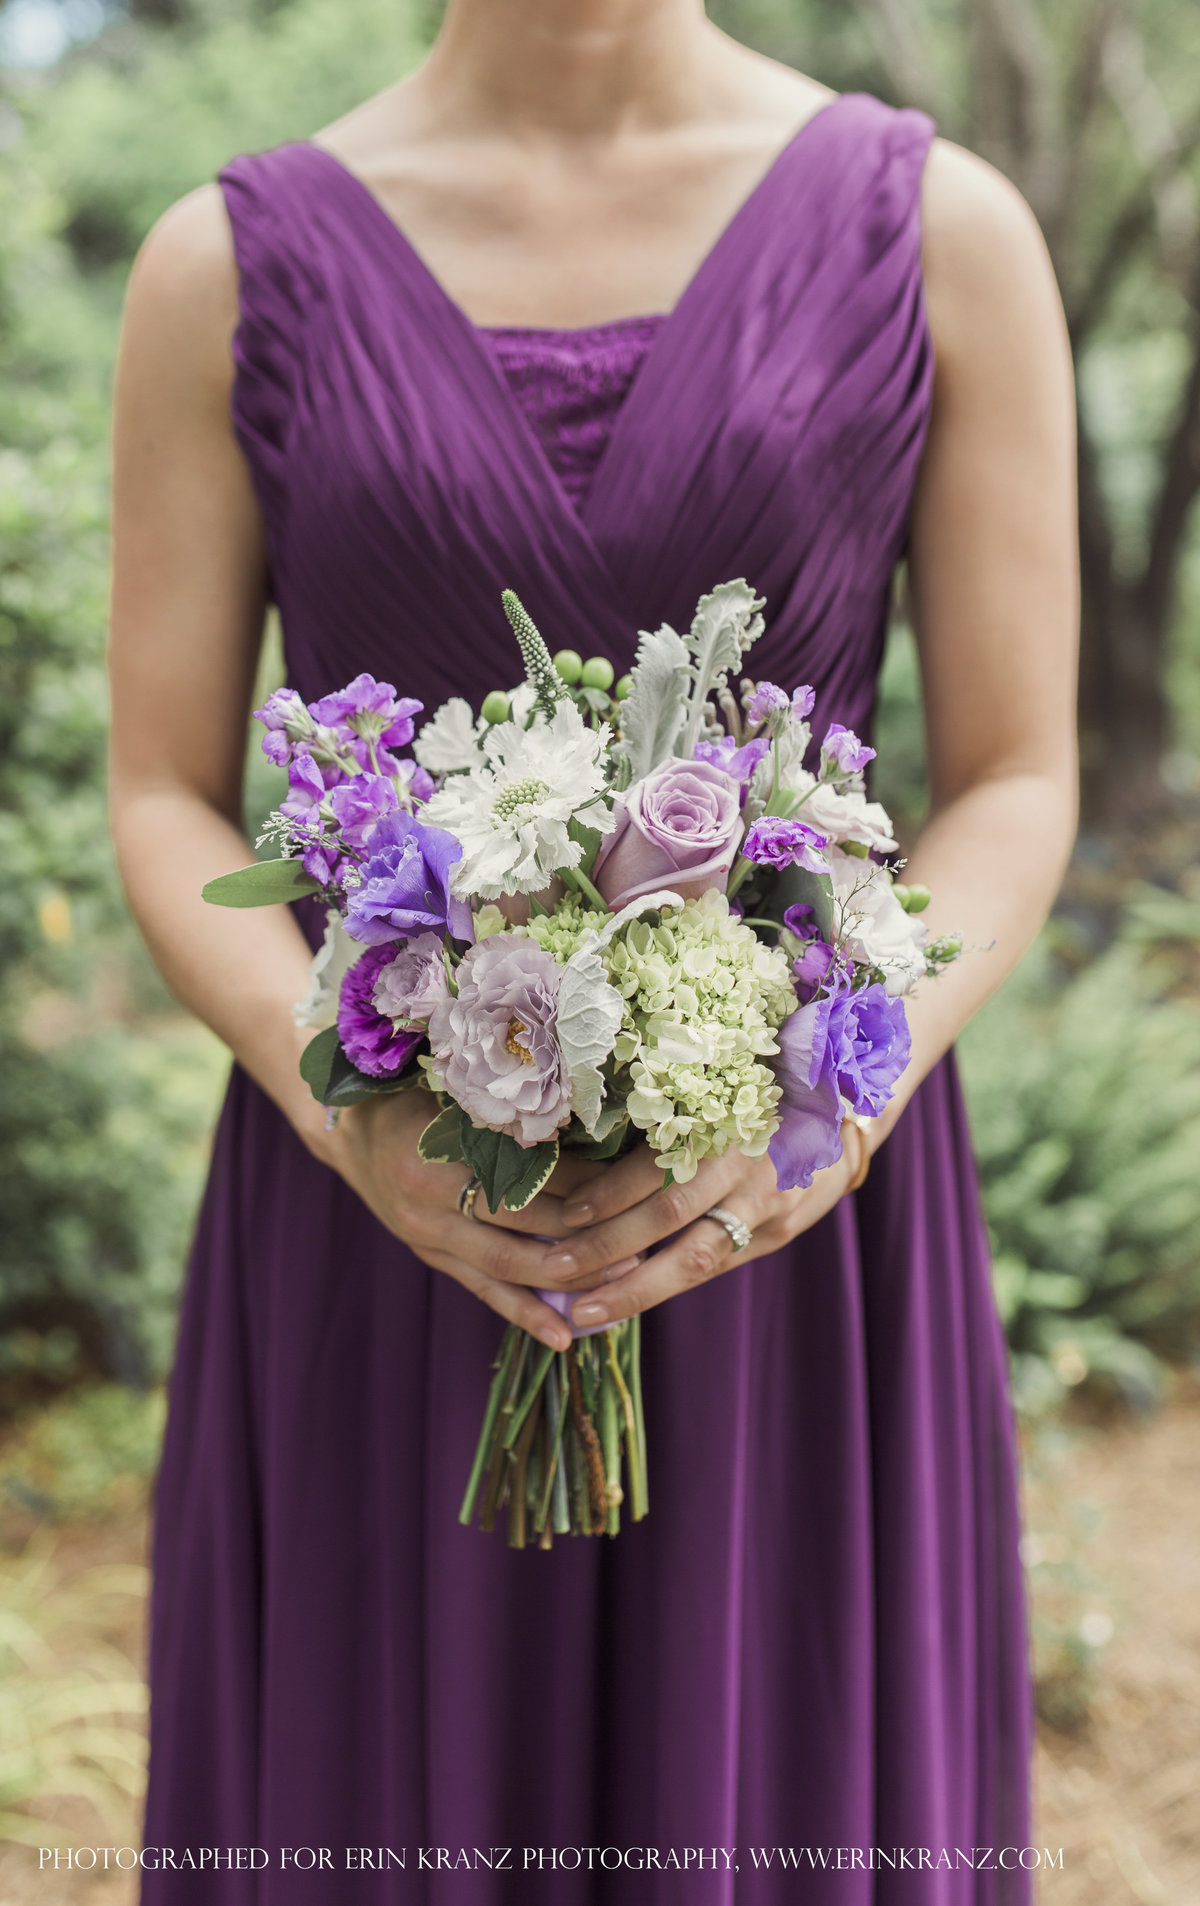 charlotte wedding photographer jamie lucido captures a bridal party detail of dress and bouquet featuring purple and white florals at Barclay Villa Raleigh